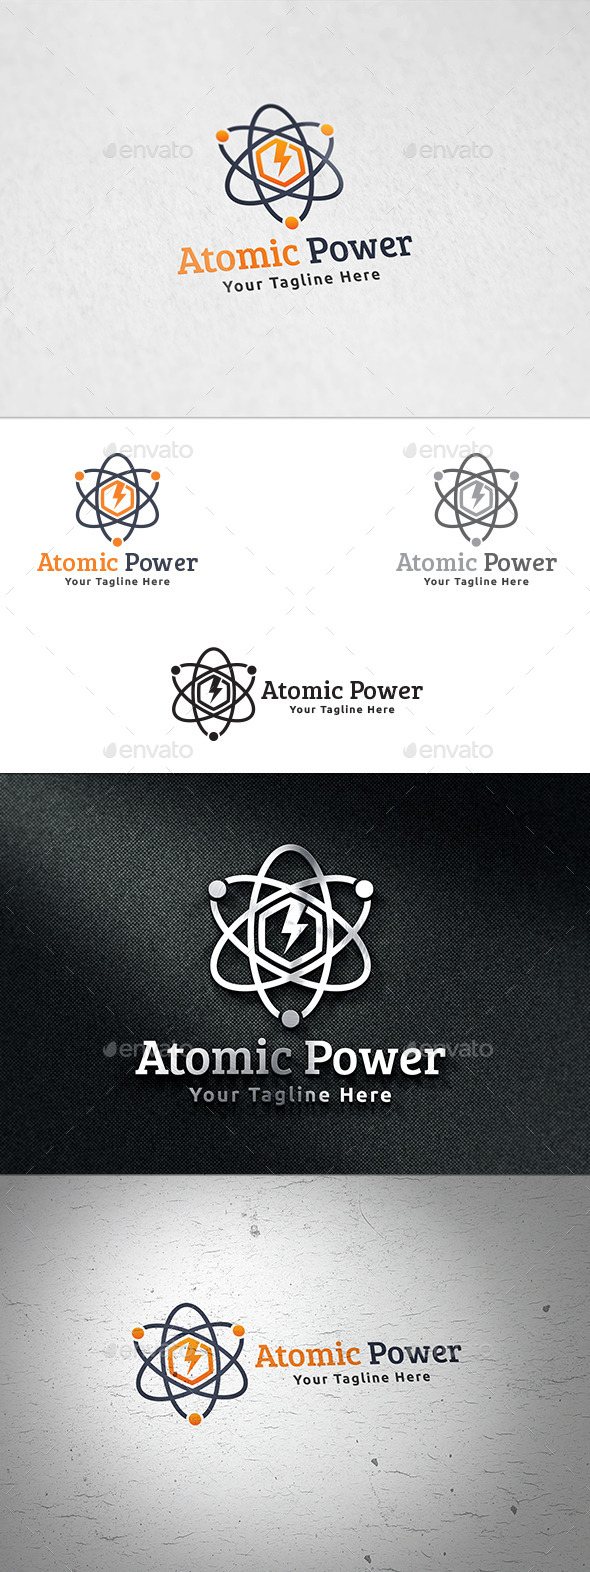 Atomic Power - Logo Template - Symbols Logo Templates